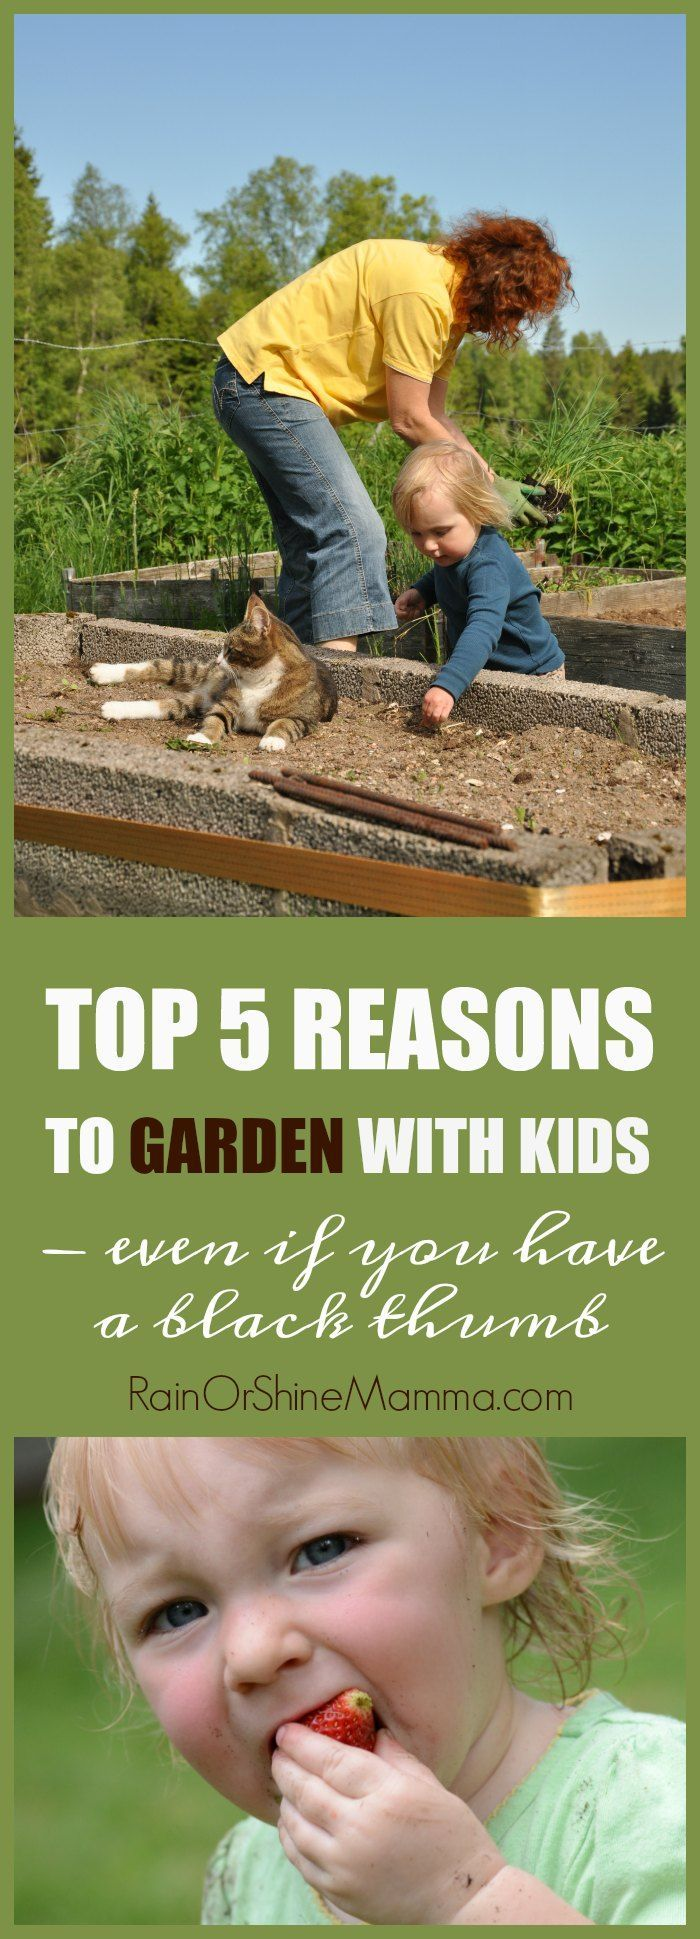 Top 5 Reasons to Garden with Kids - Even if you have a black thumb! Don't give up on gardening with your kids because of your own shortcomings or failures as a gardener. The kids can still reap many benefits from your attempts to grow your own food. Rain or Shine Mamma.